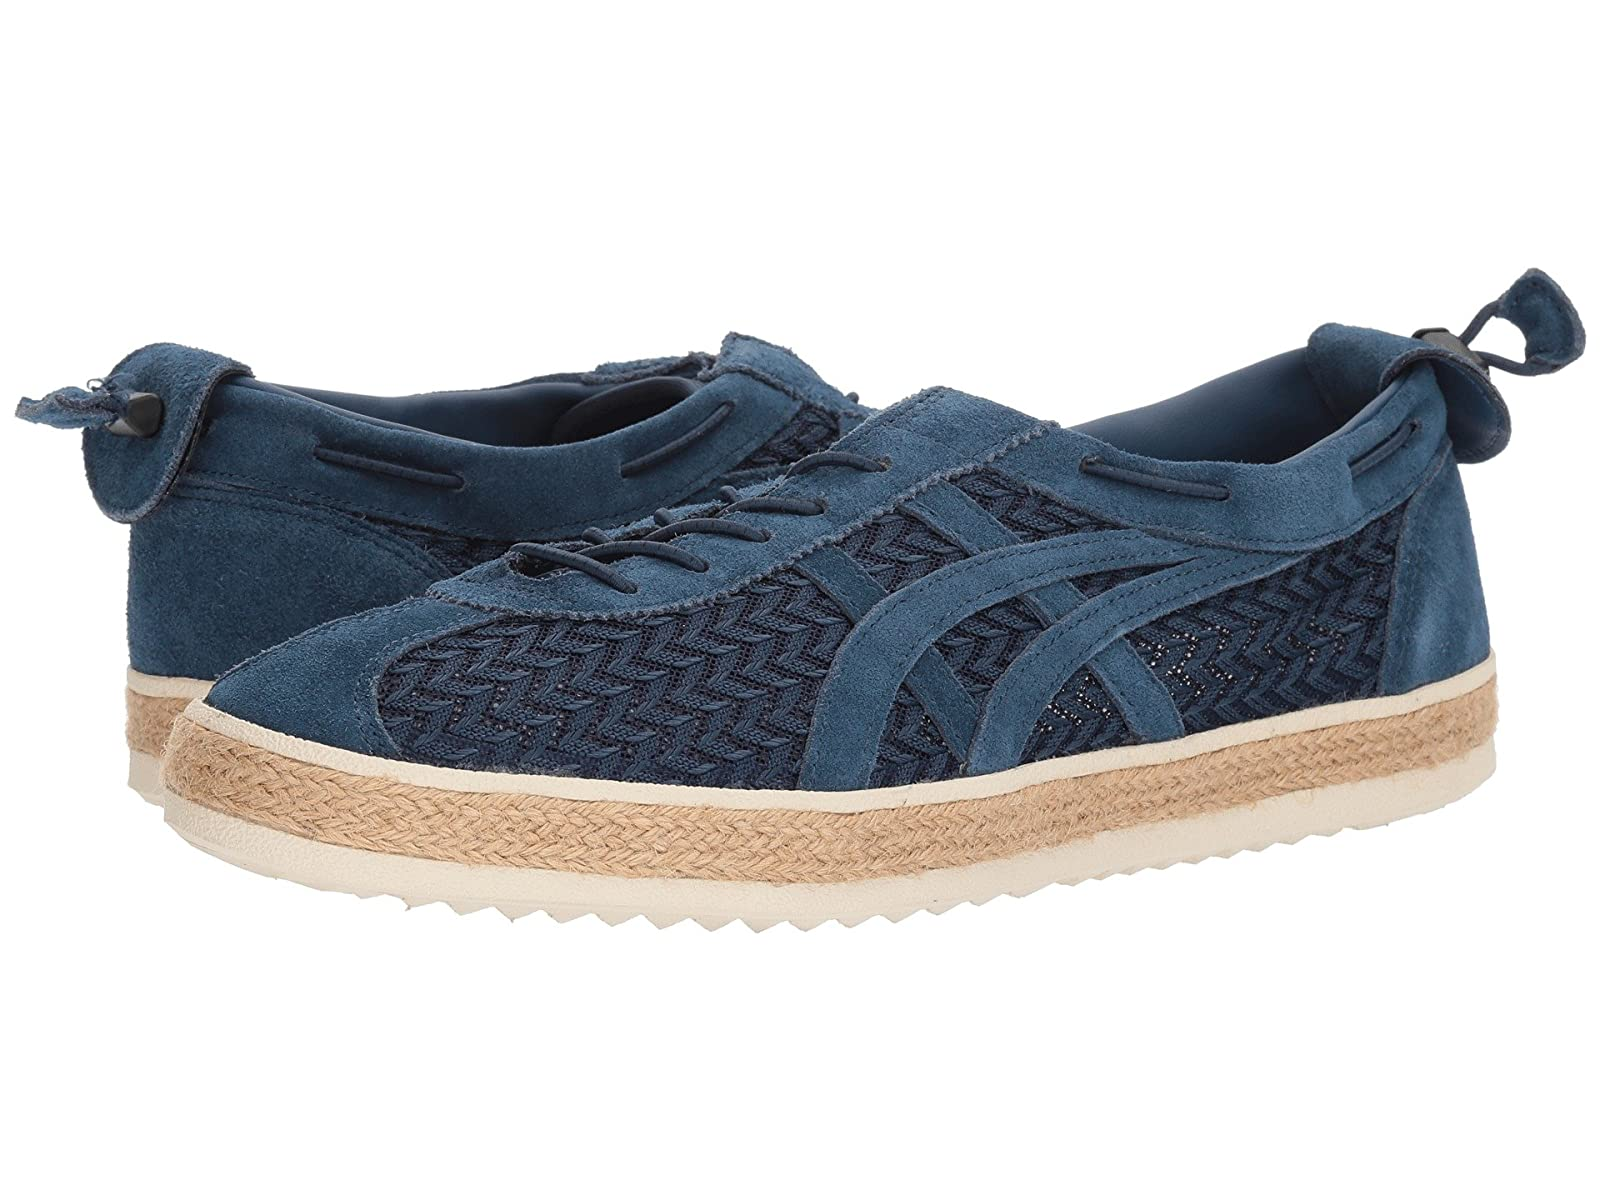 Onitsuka Tiger by Asics Delegation LightCheap and distinctive eye-catching shoes